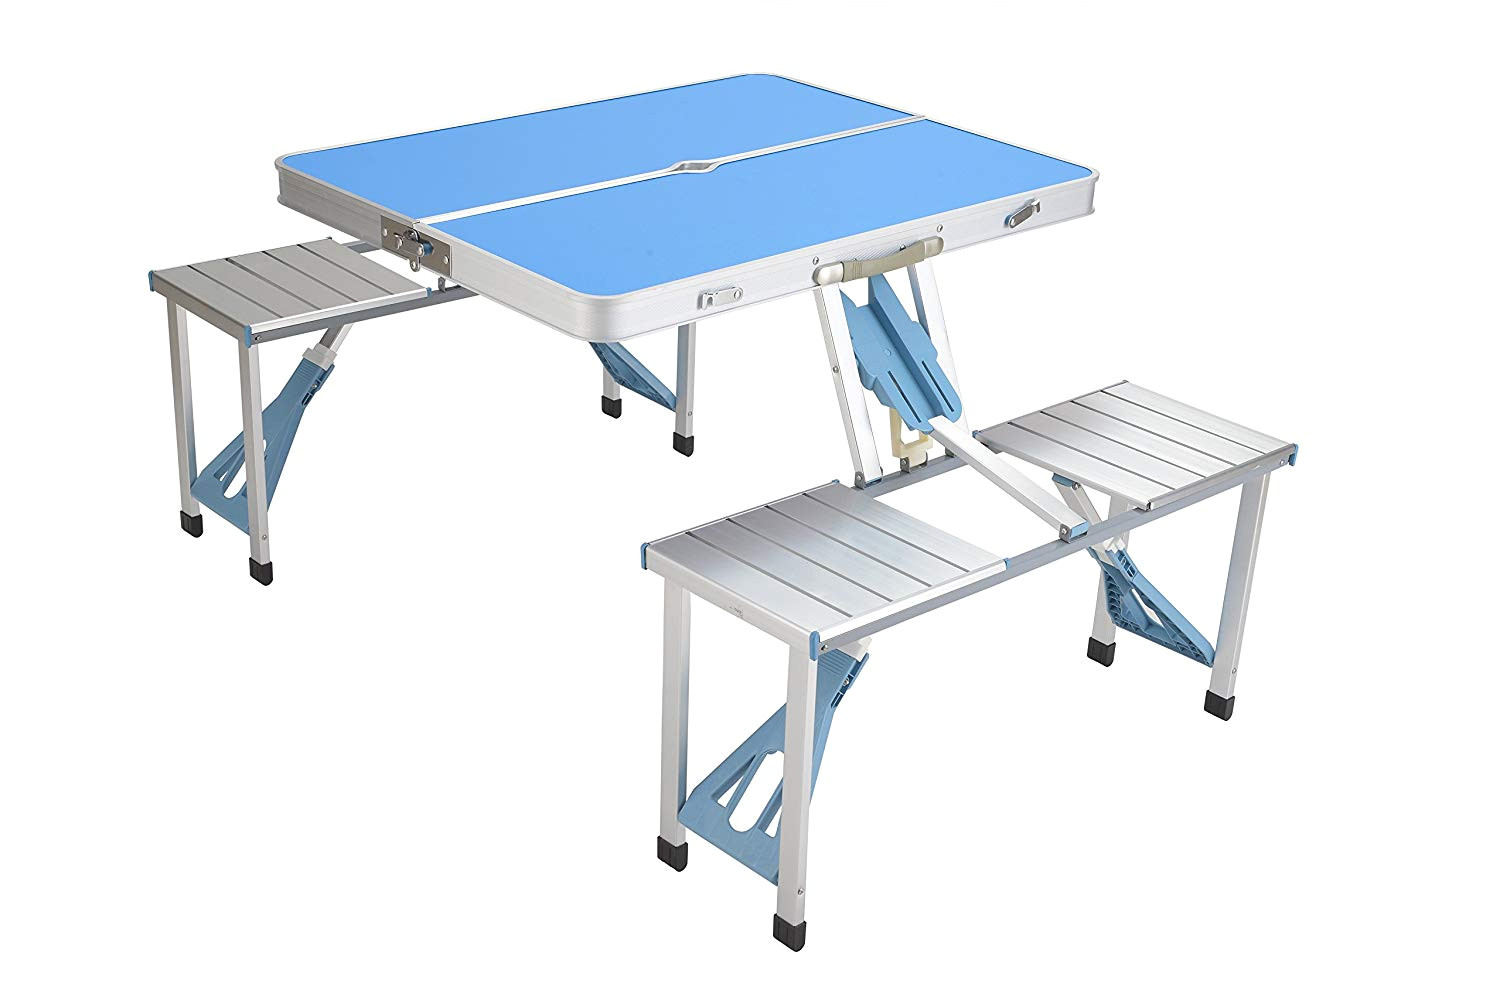 equal heavy duty portable aluminium foldable picnic table for camping hiking purpose